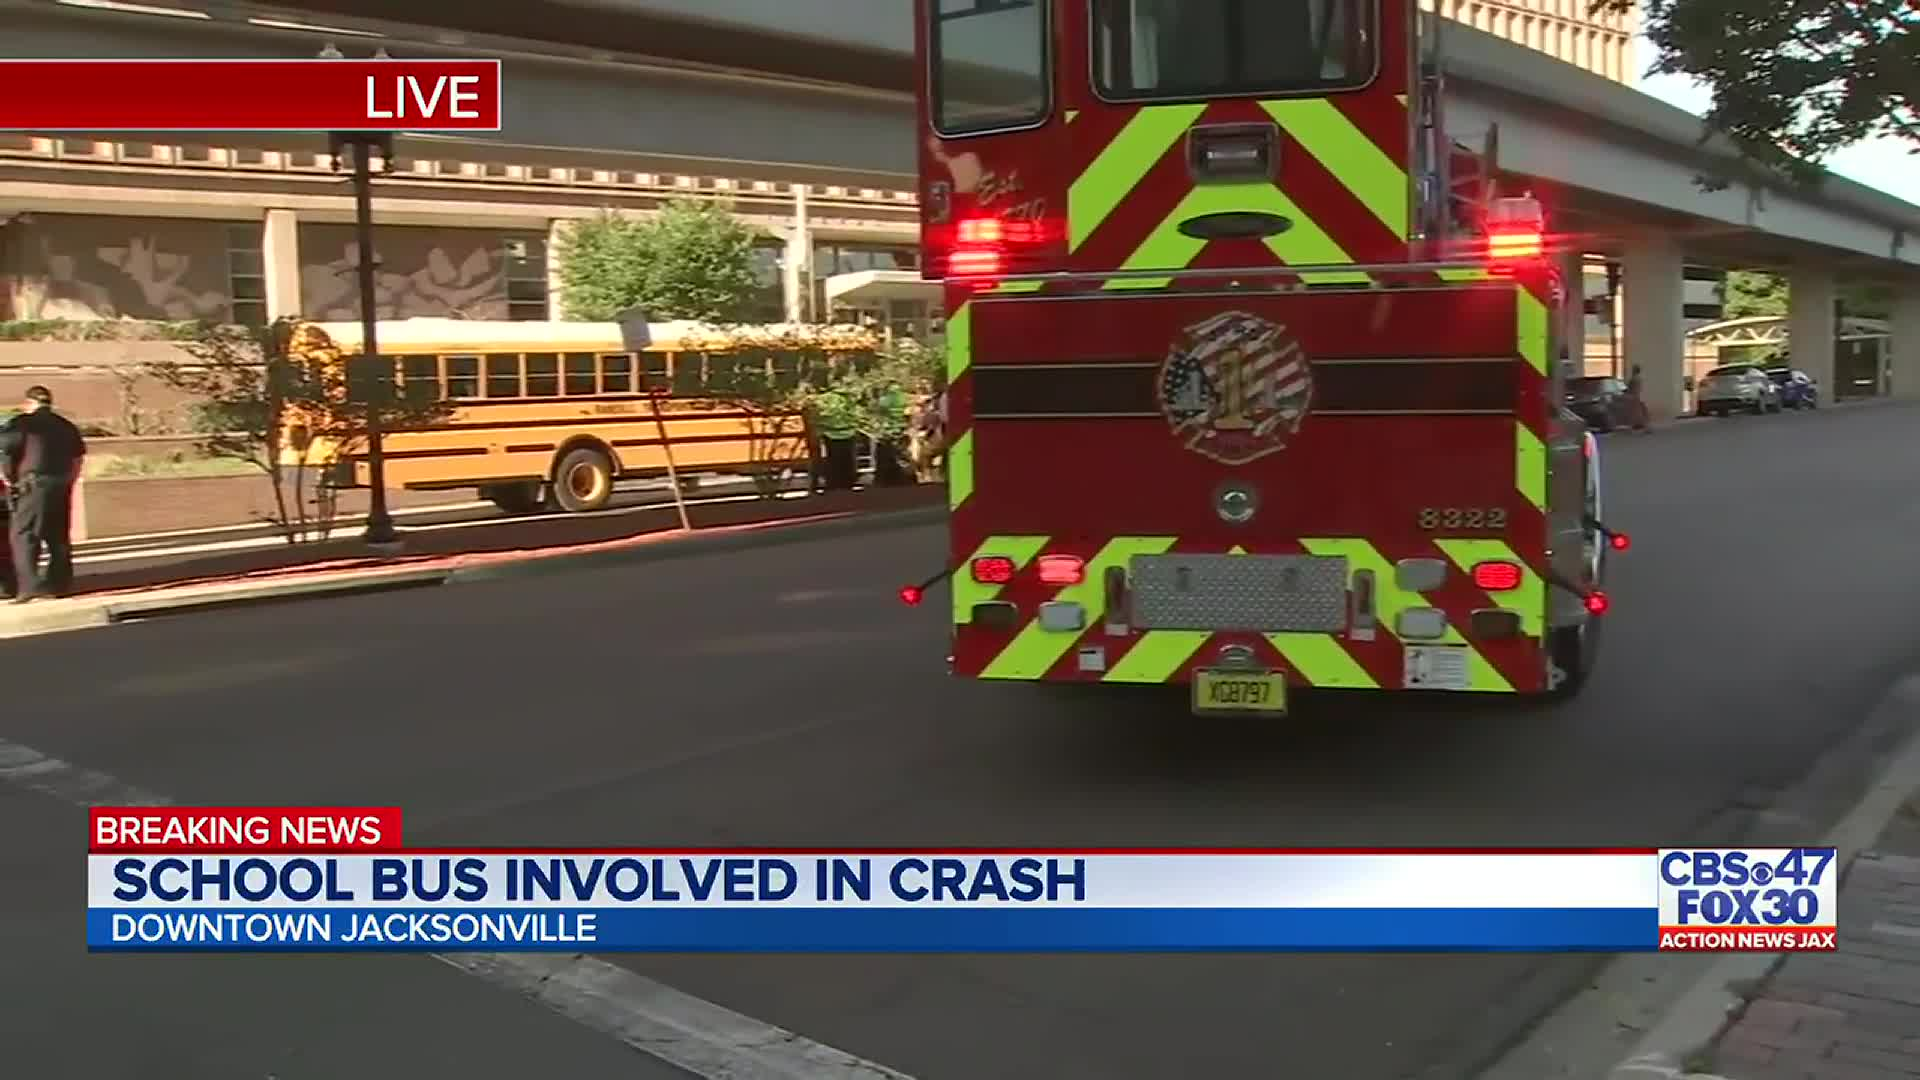 School bus involved in crash in downtown Jacksonville, multiple students taken to hospital